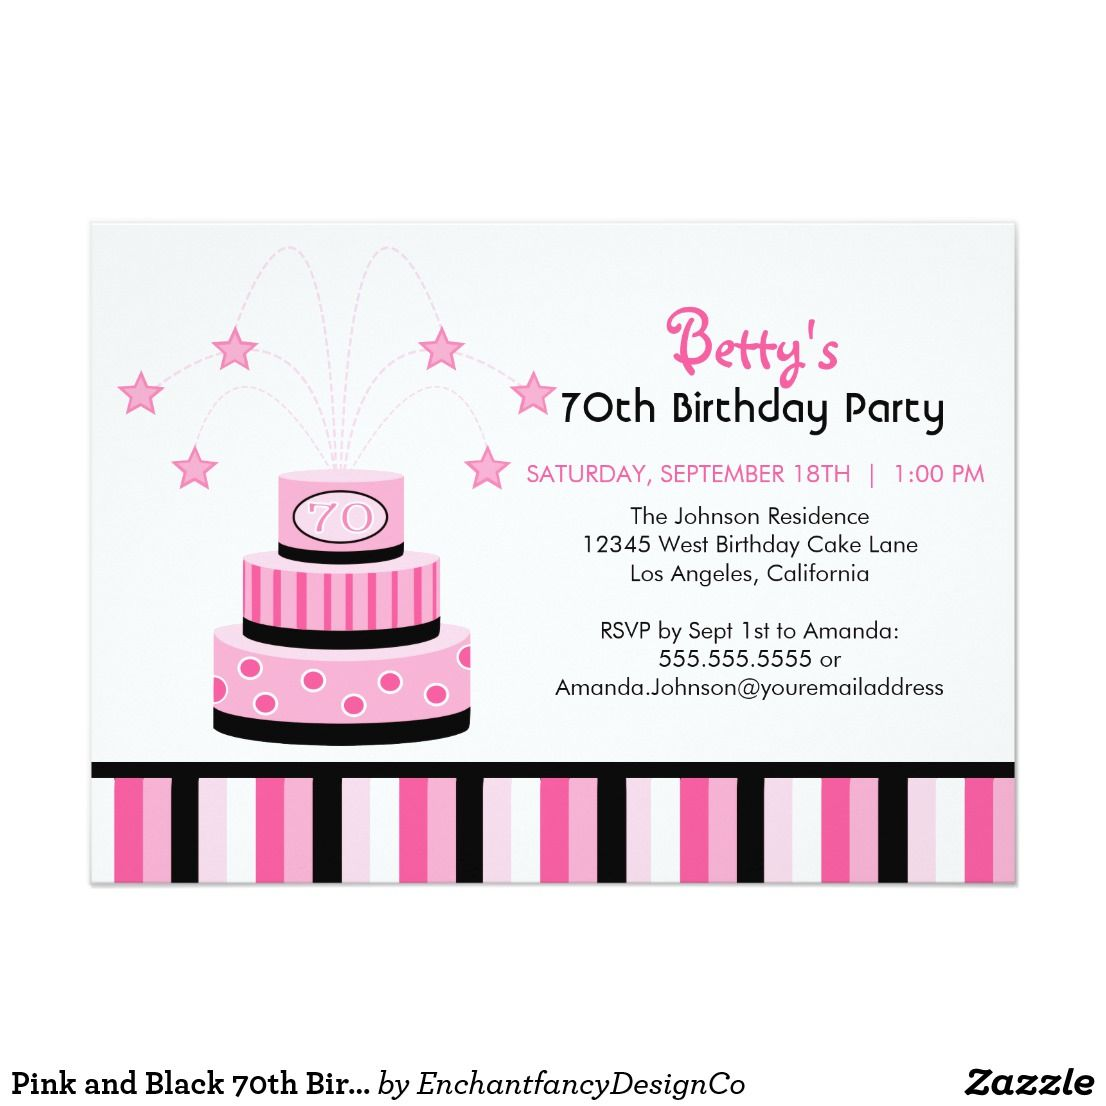 Pink and Black 70th Birthday Cake Party Invitation | 70th birthday ...